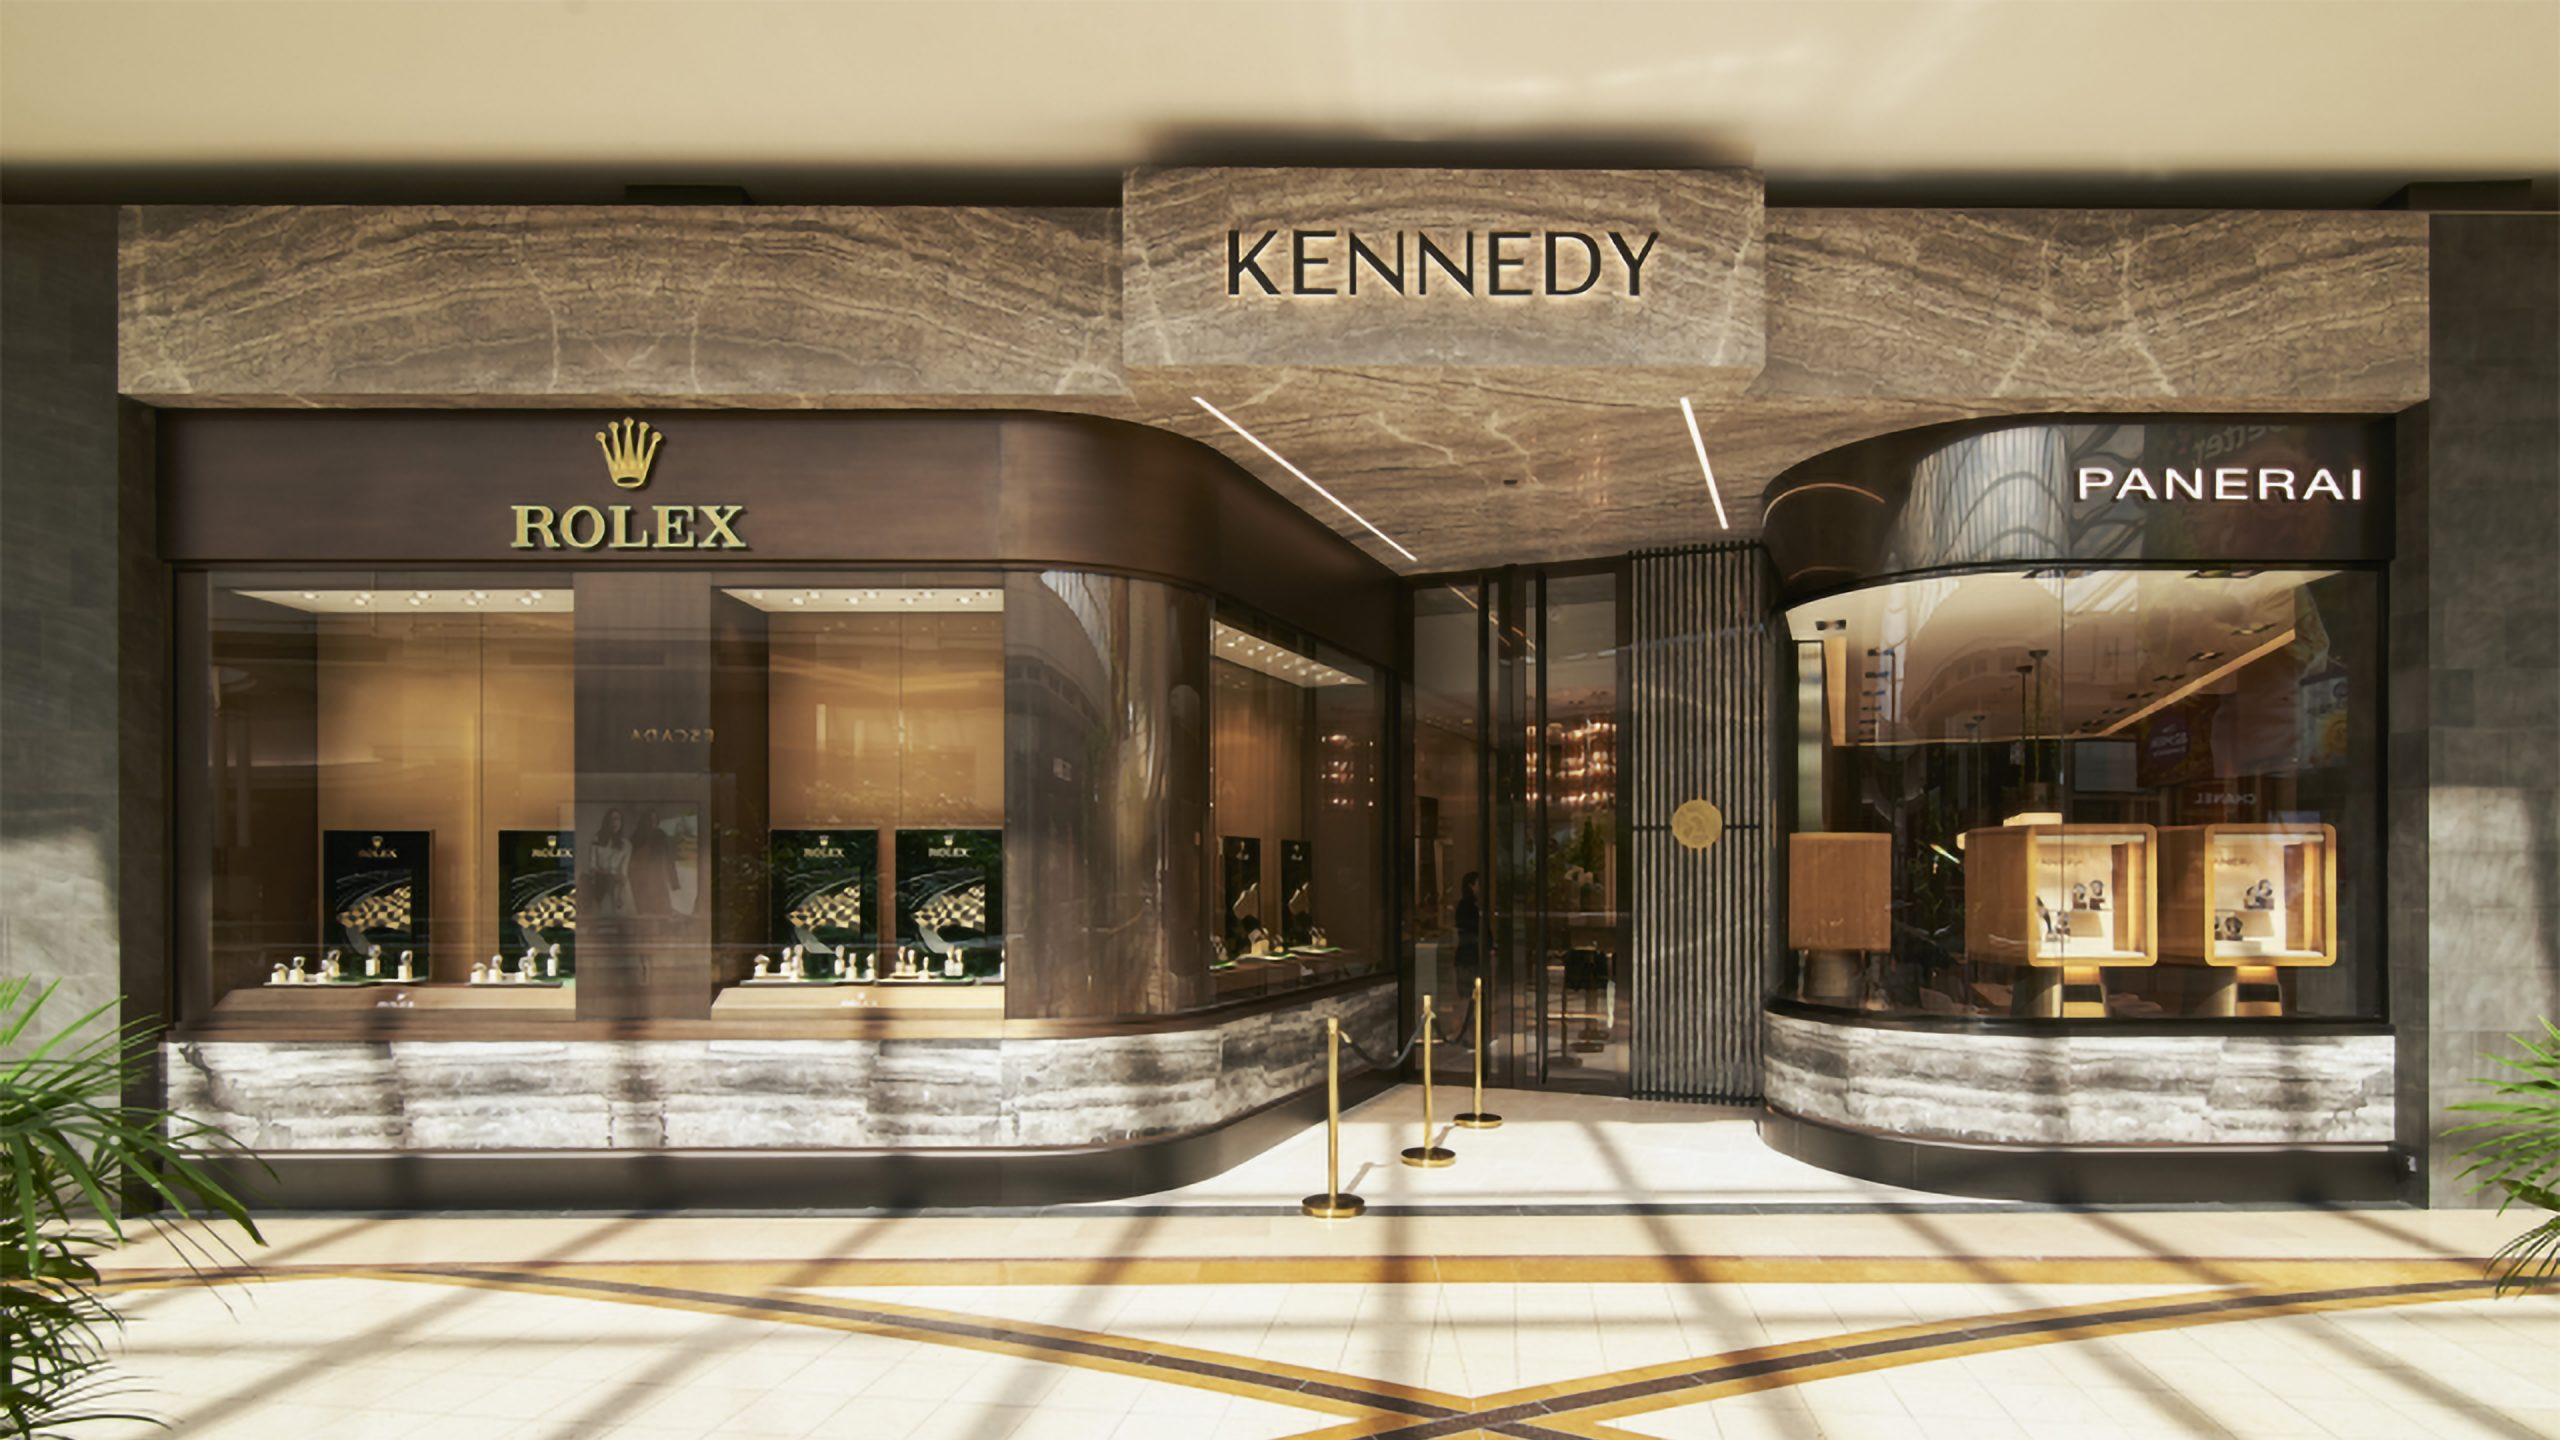 Kennedy Retail storefront featuring Rolex, Panerai and the Kennedy logotype designed by Helium Design Melbourne.